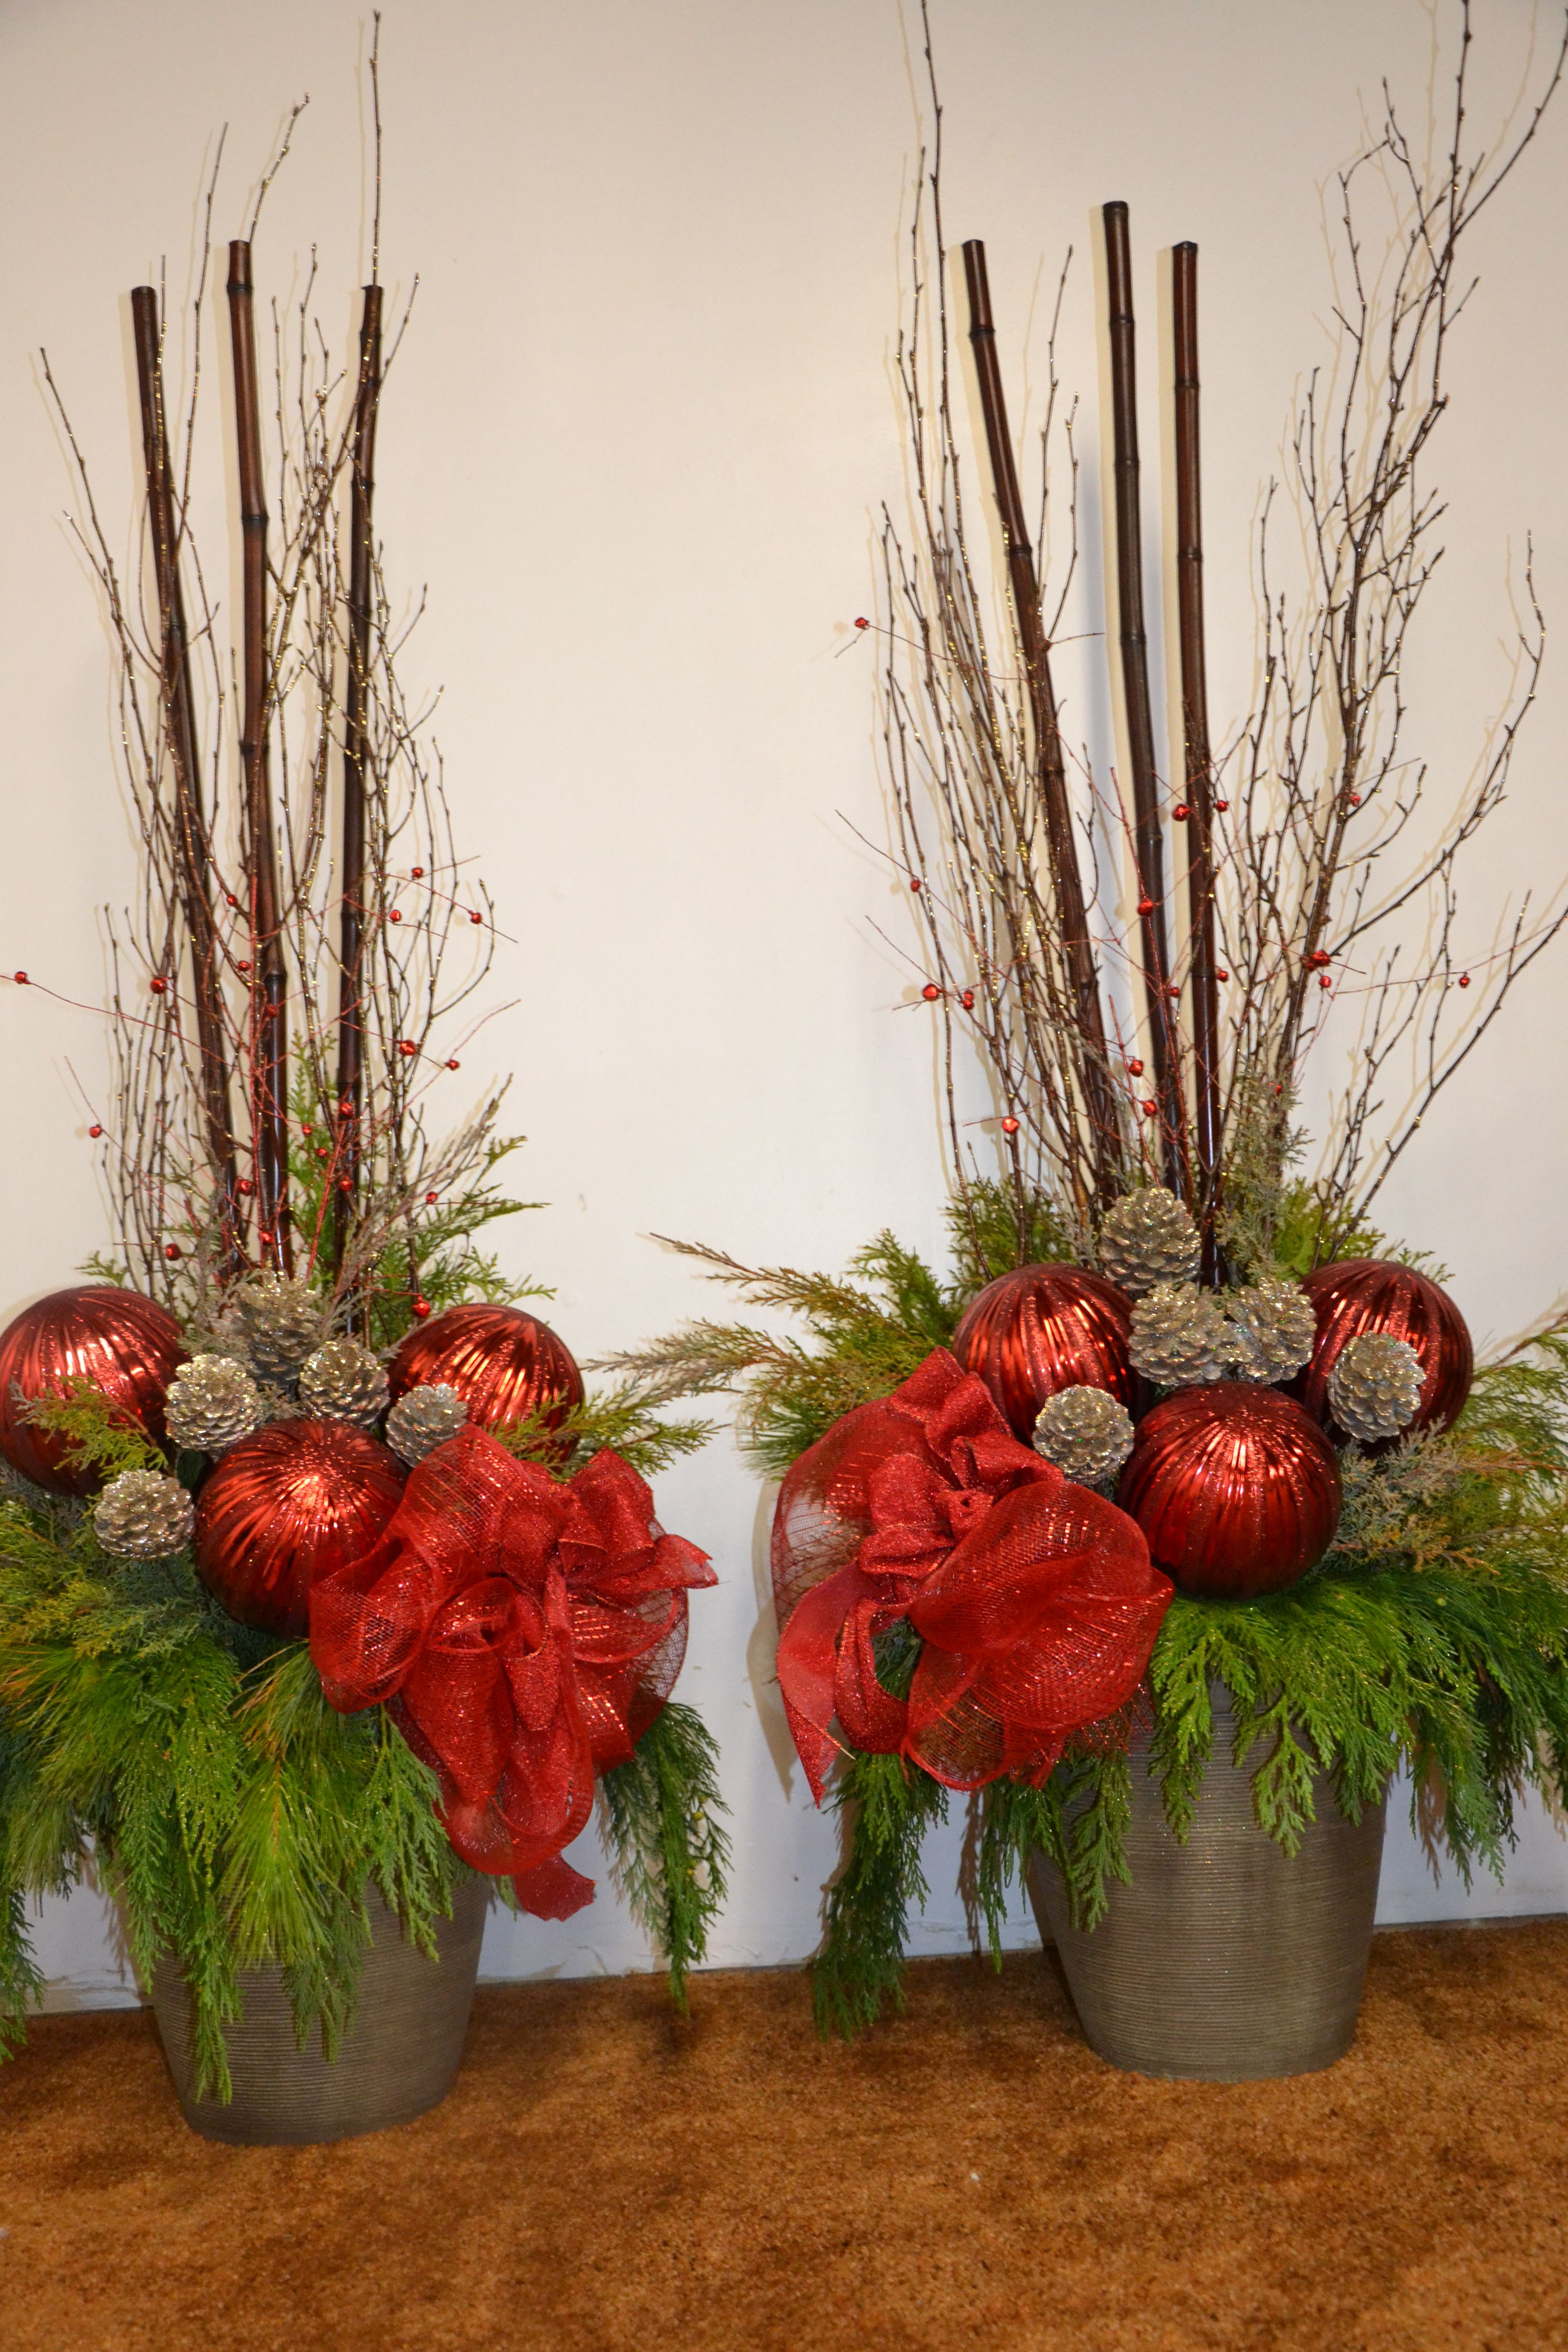 Urn Ideas For Christmasthese Pots Were Great Fit For Most